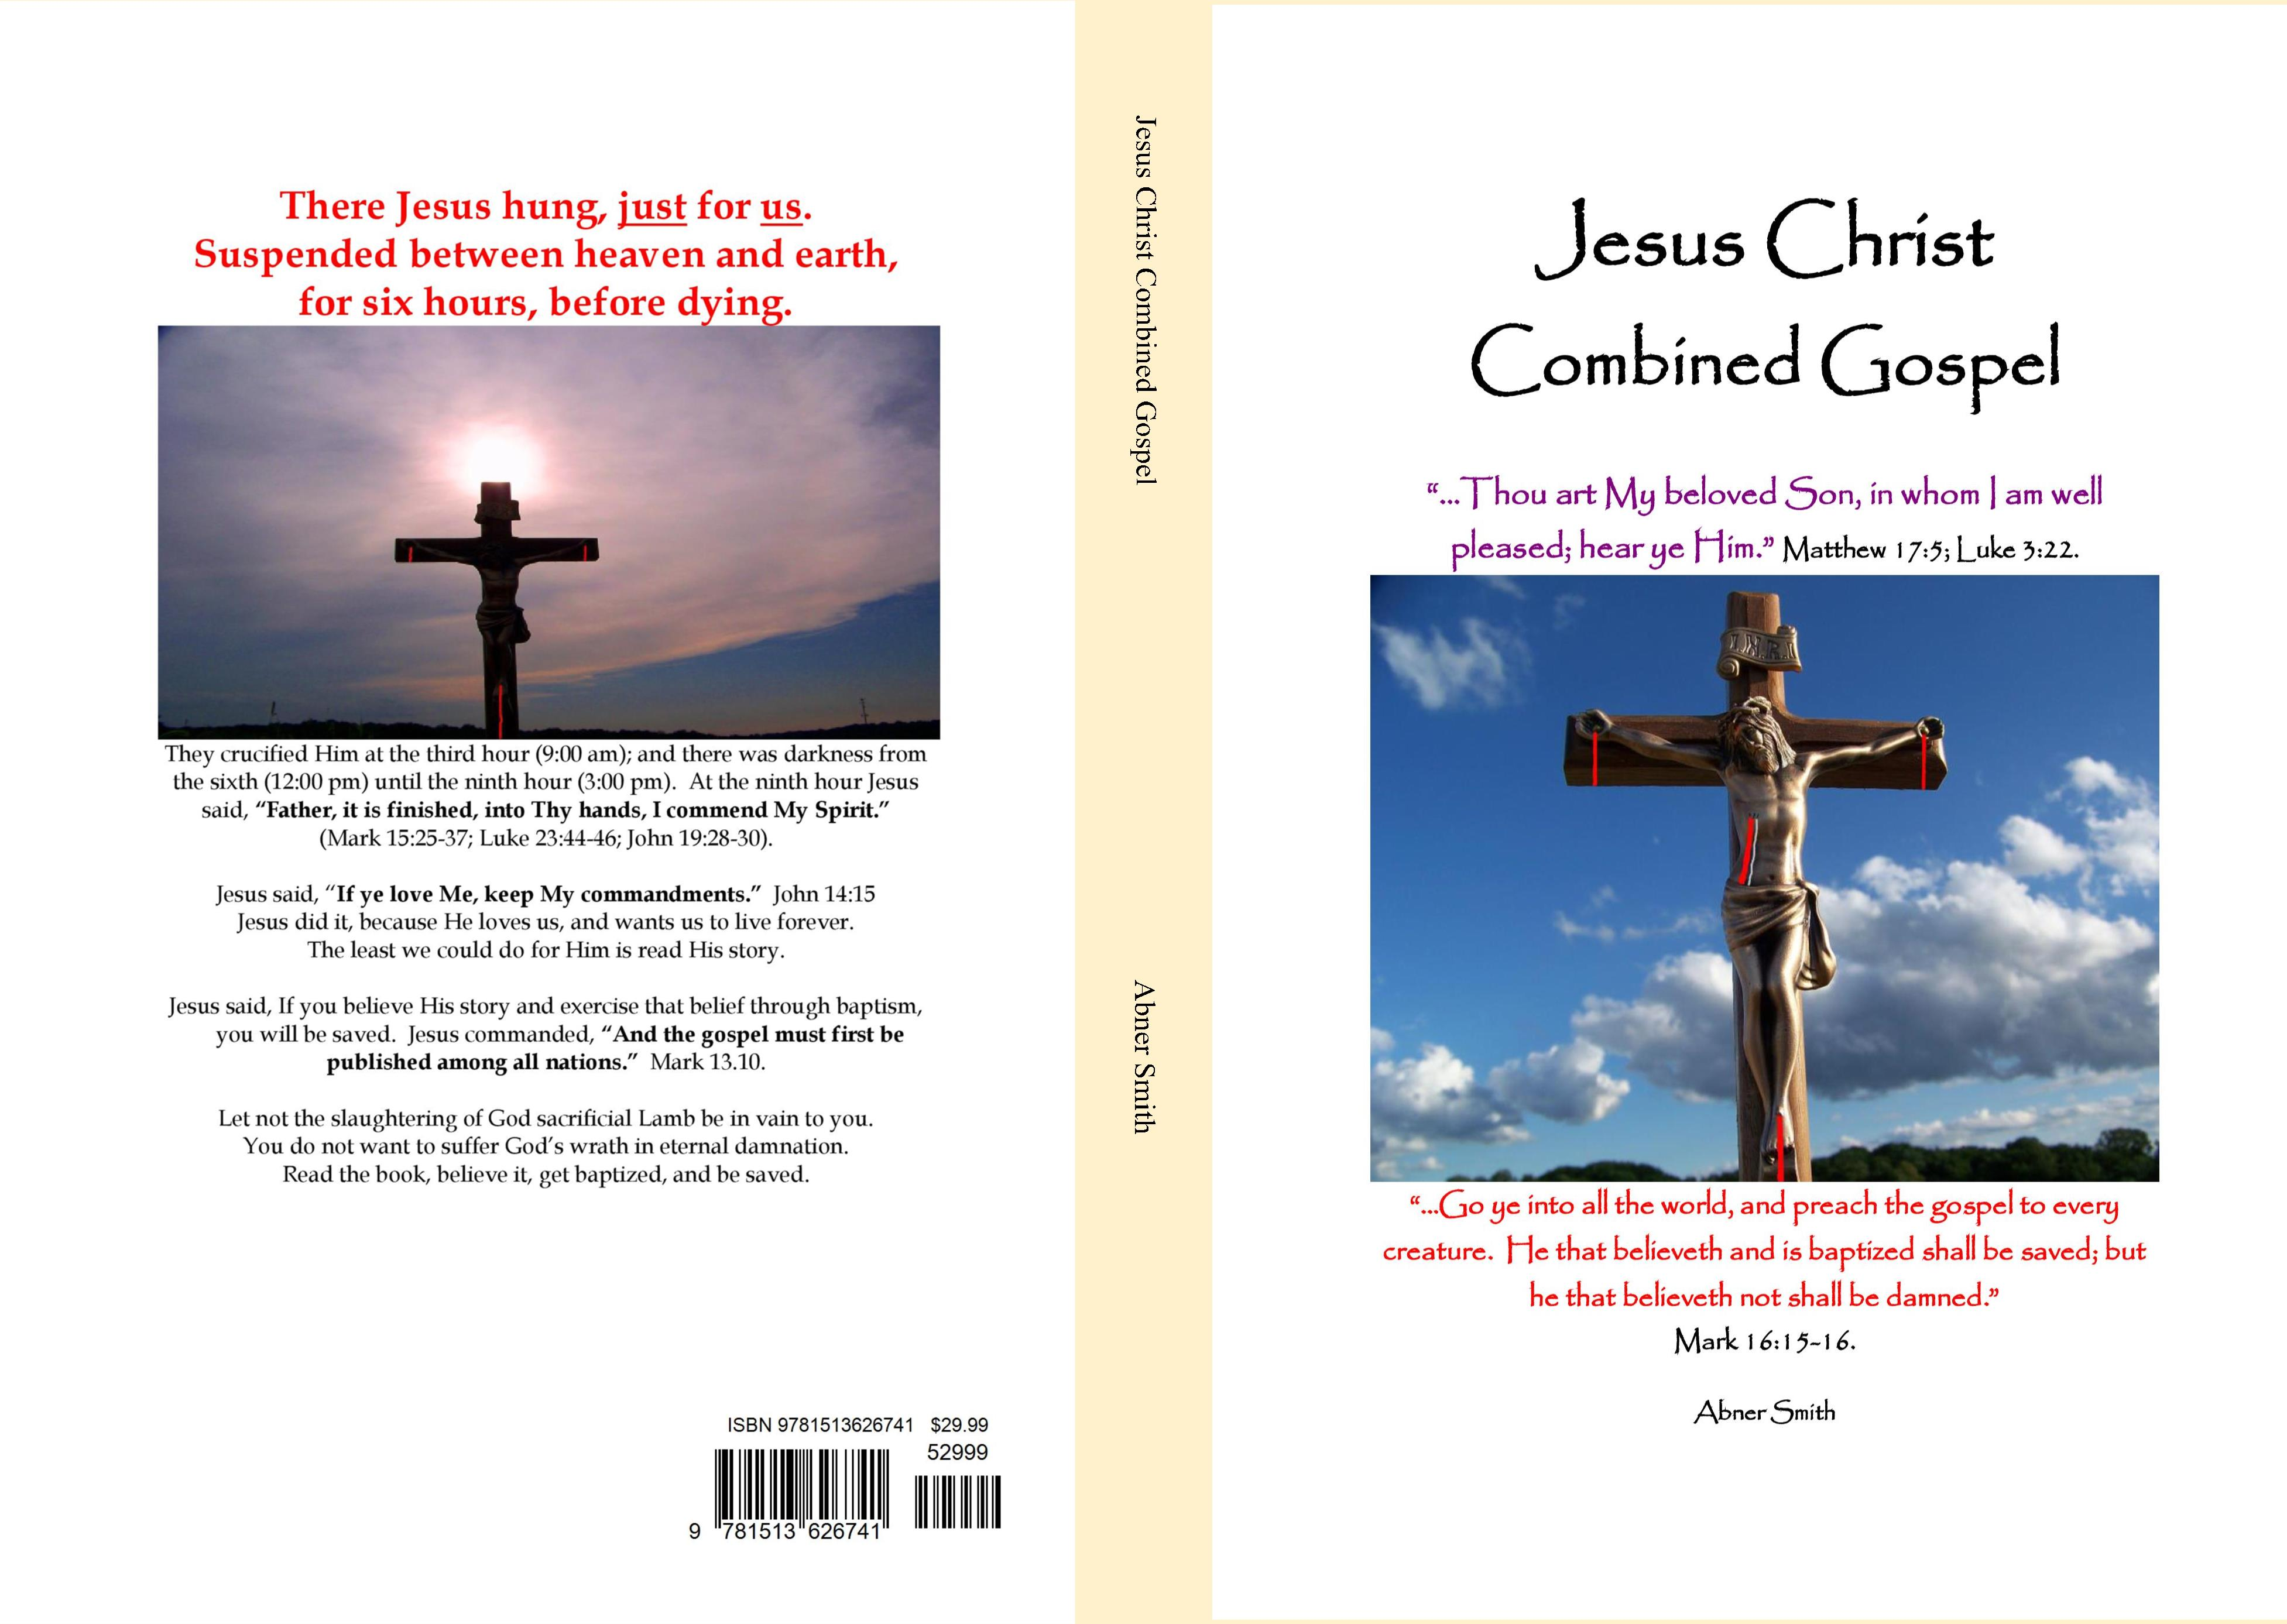 Jesus christ combined gospel by abner smith 2999 9781513626741 jesus christ combined gospel cover image buycottarizona Choice Image